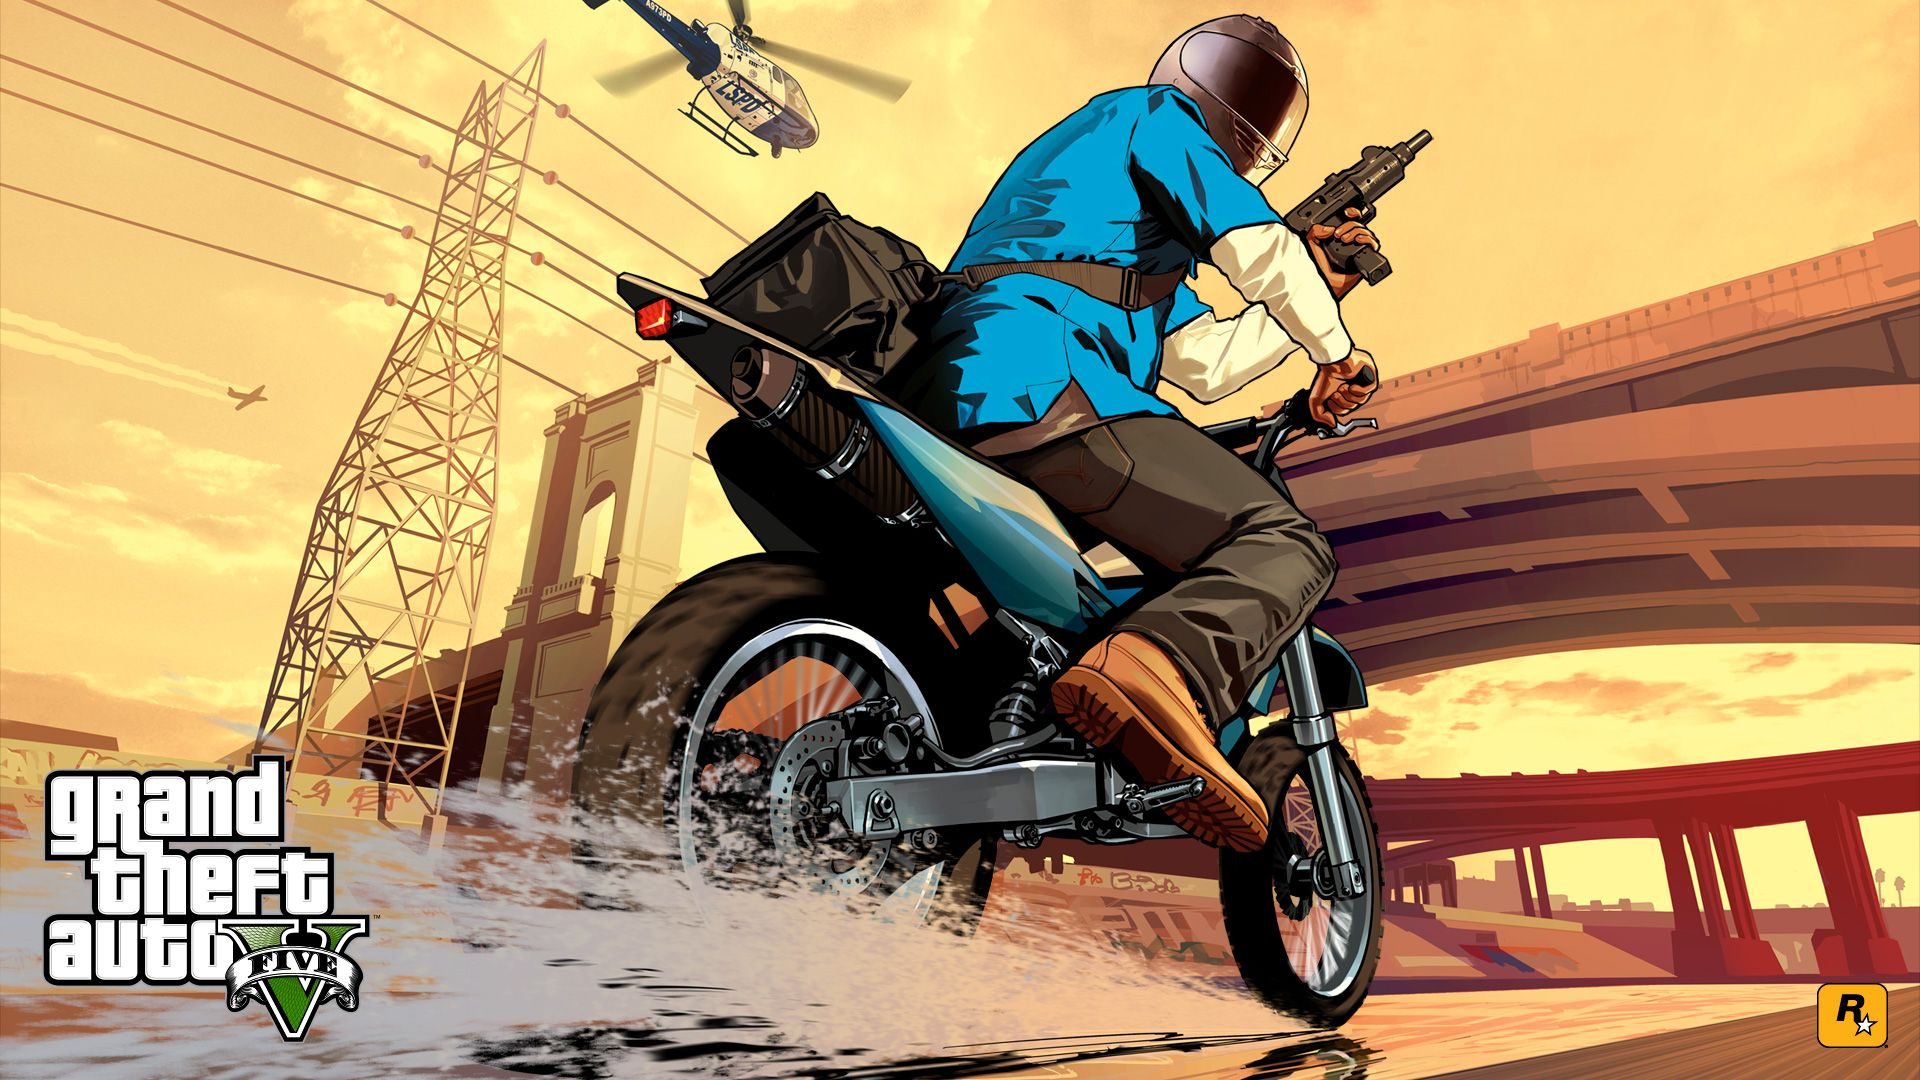 Gta 5 Wallpaper Grand Theft Auto Grand Theft Auto 4 Gta